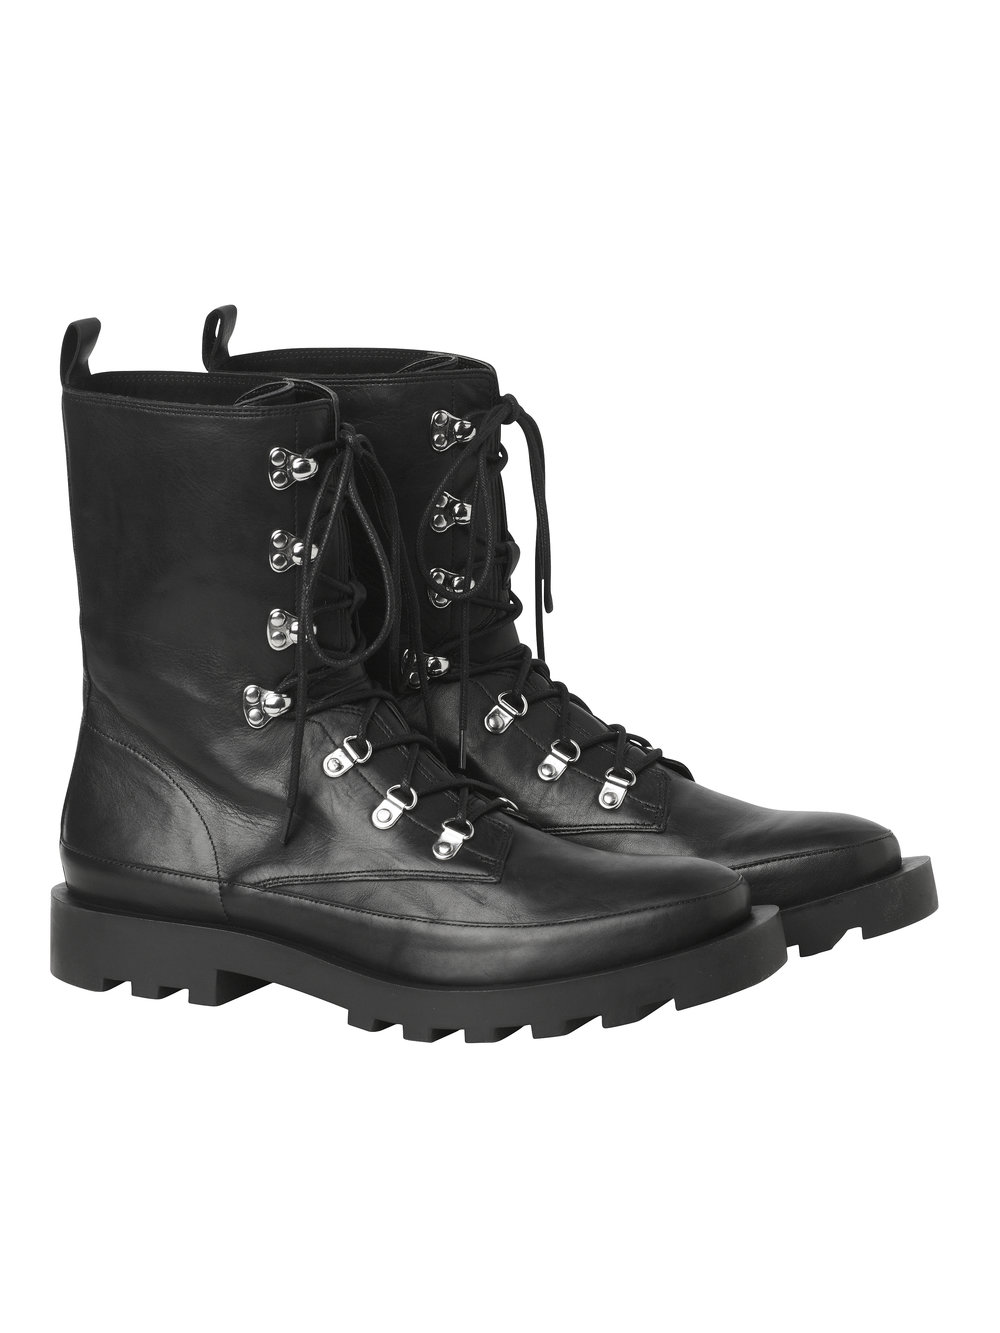 Combat boots from Cheap Monday.